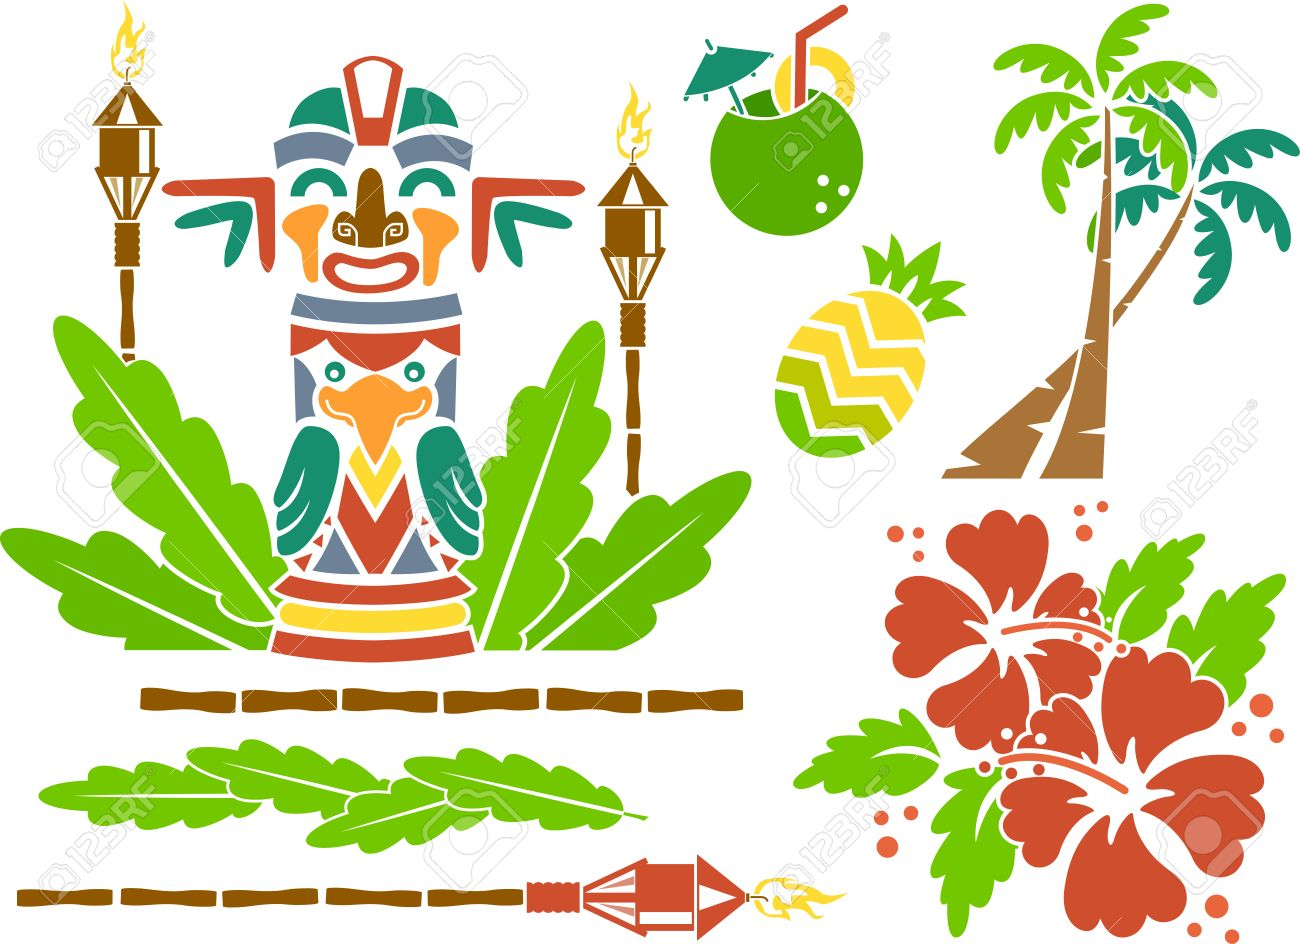 Illustration featuring stencils of hawaii related items royalty free illustration featuring stencils of hawaii related items stock vector 33001627 izmirmasajfo